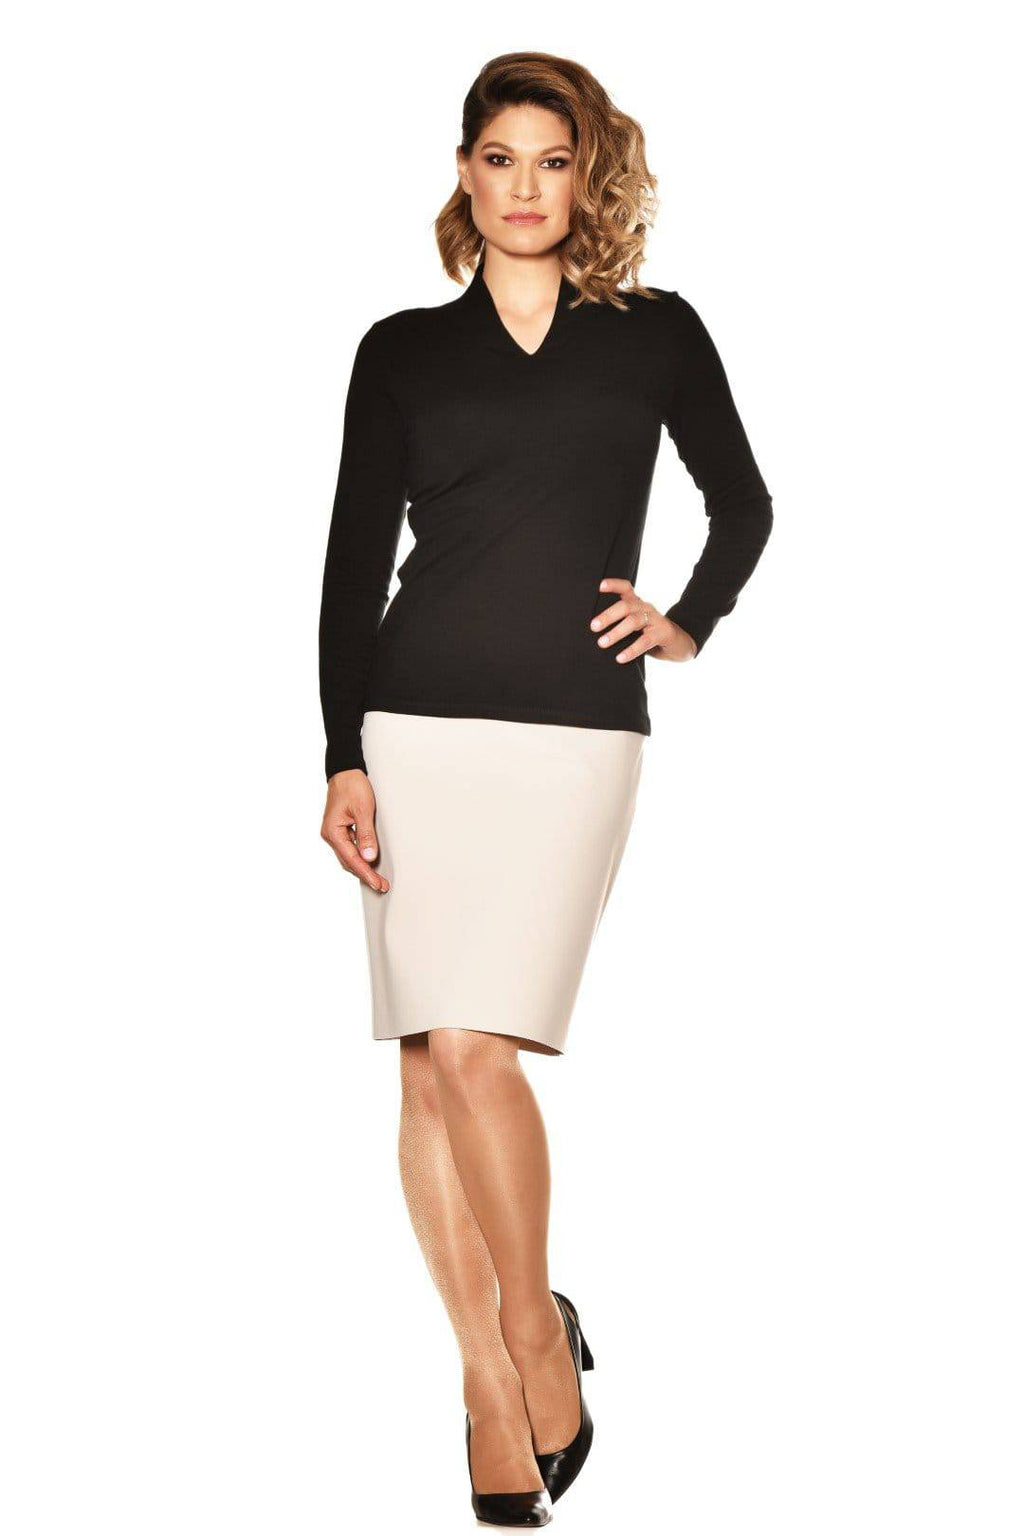 PAULA RYAN ESSENTIALS Easy Fit Long Sleeve High Neck V Top - Merino - Paula Ryan